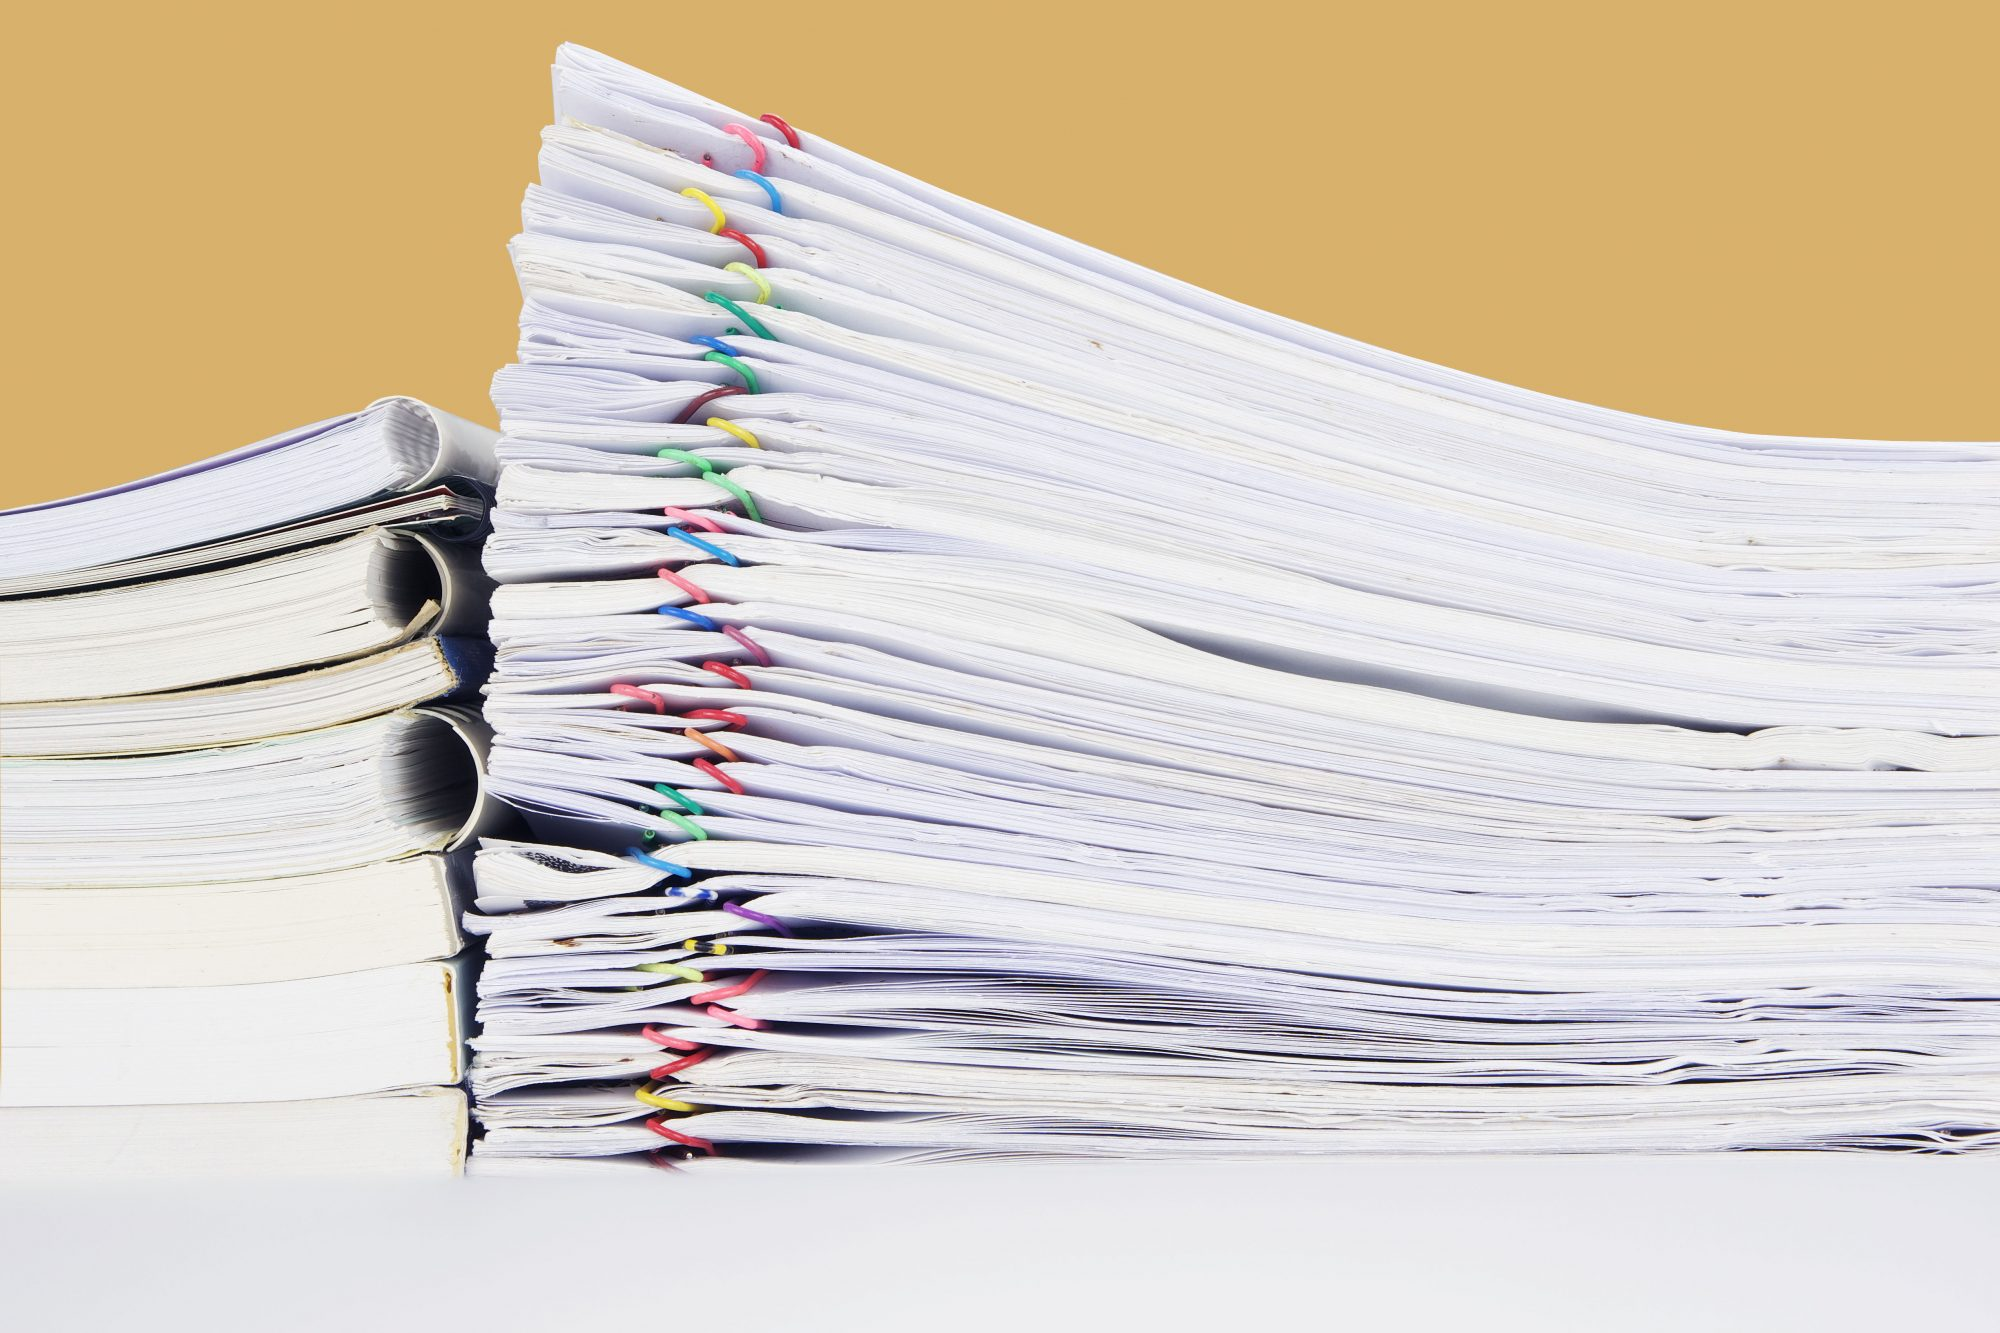 stacked pile of tax paper work on table